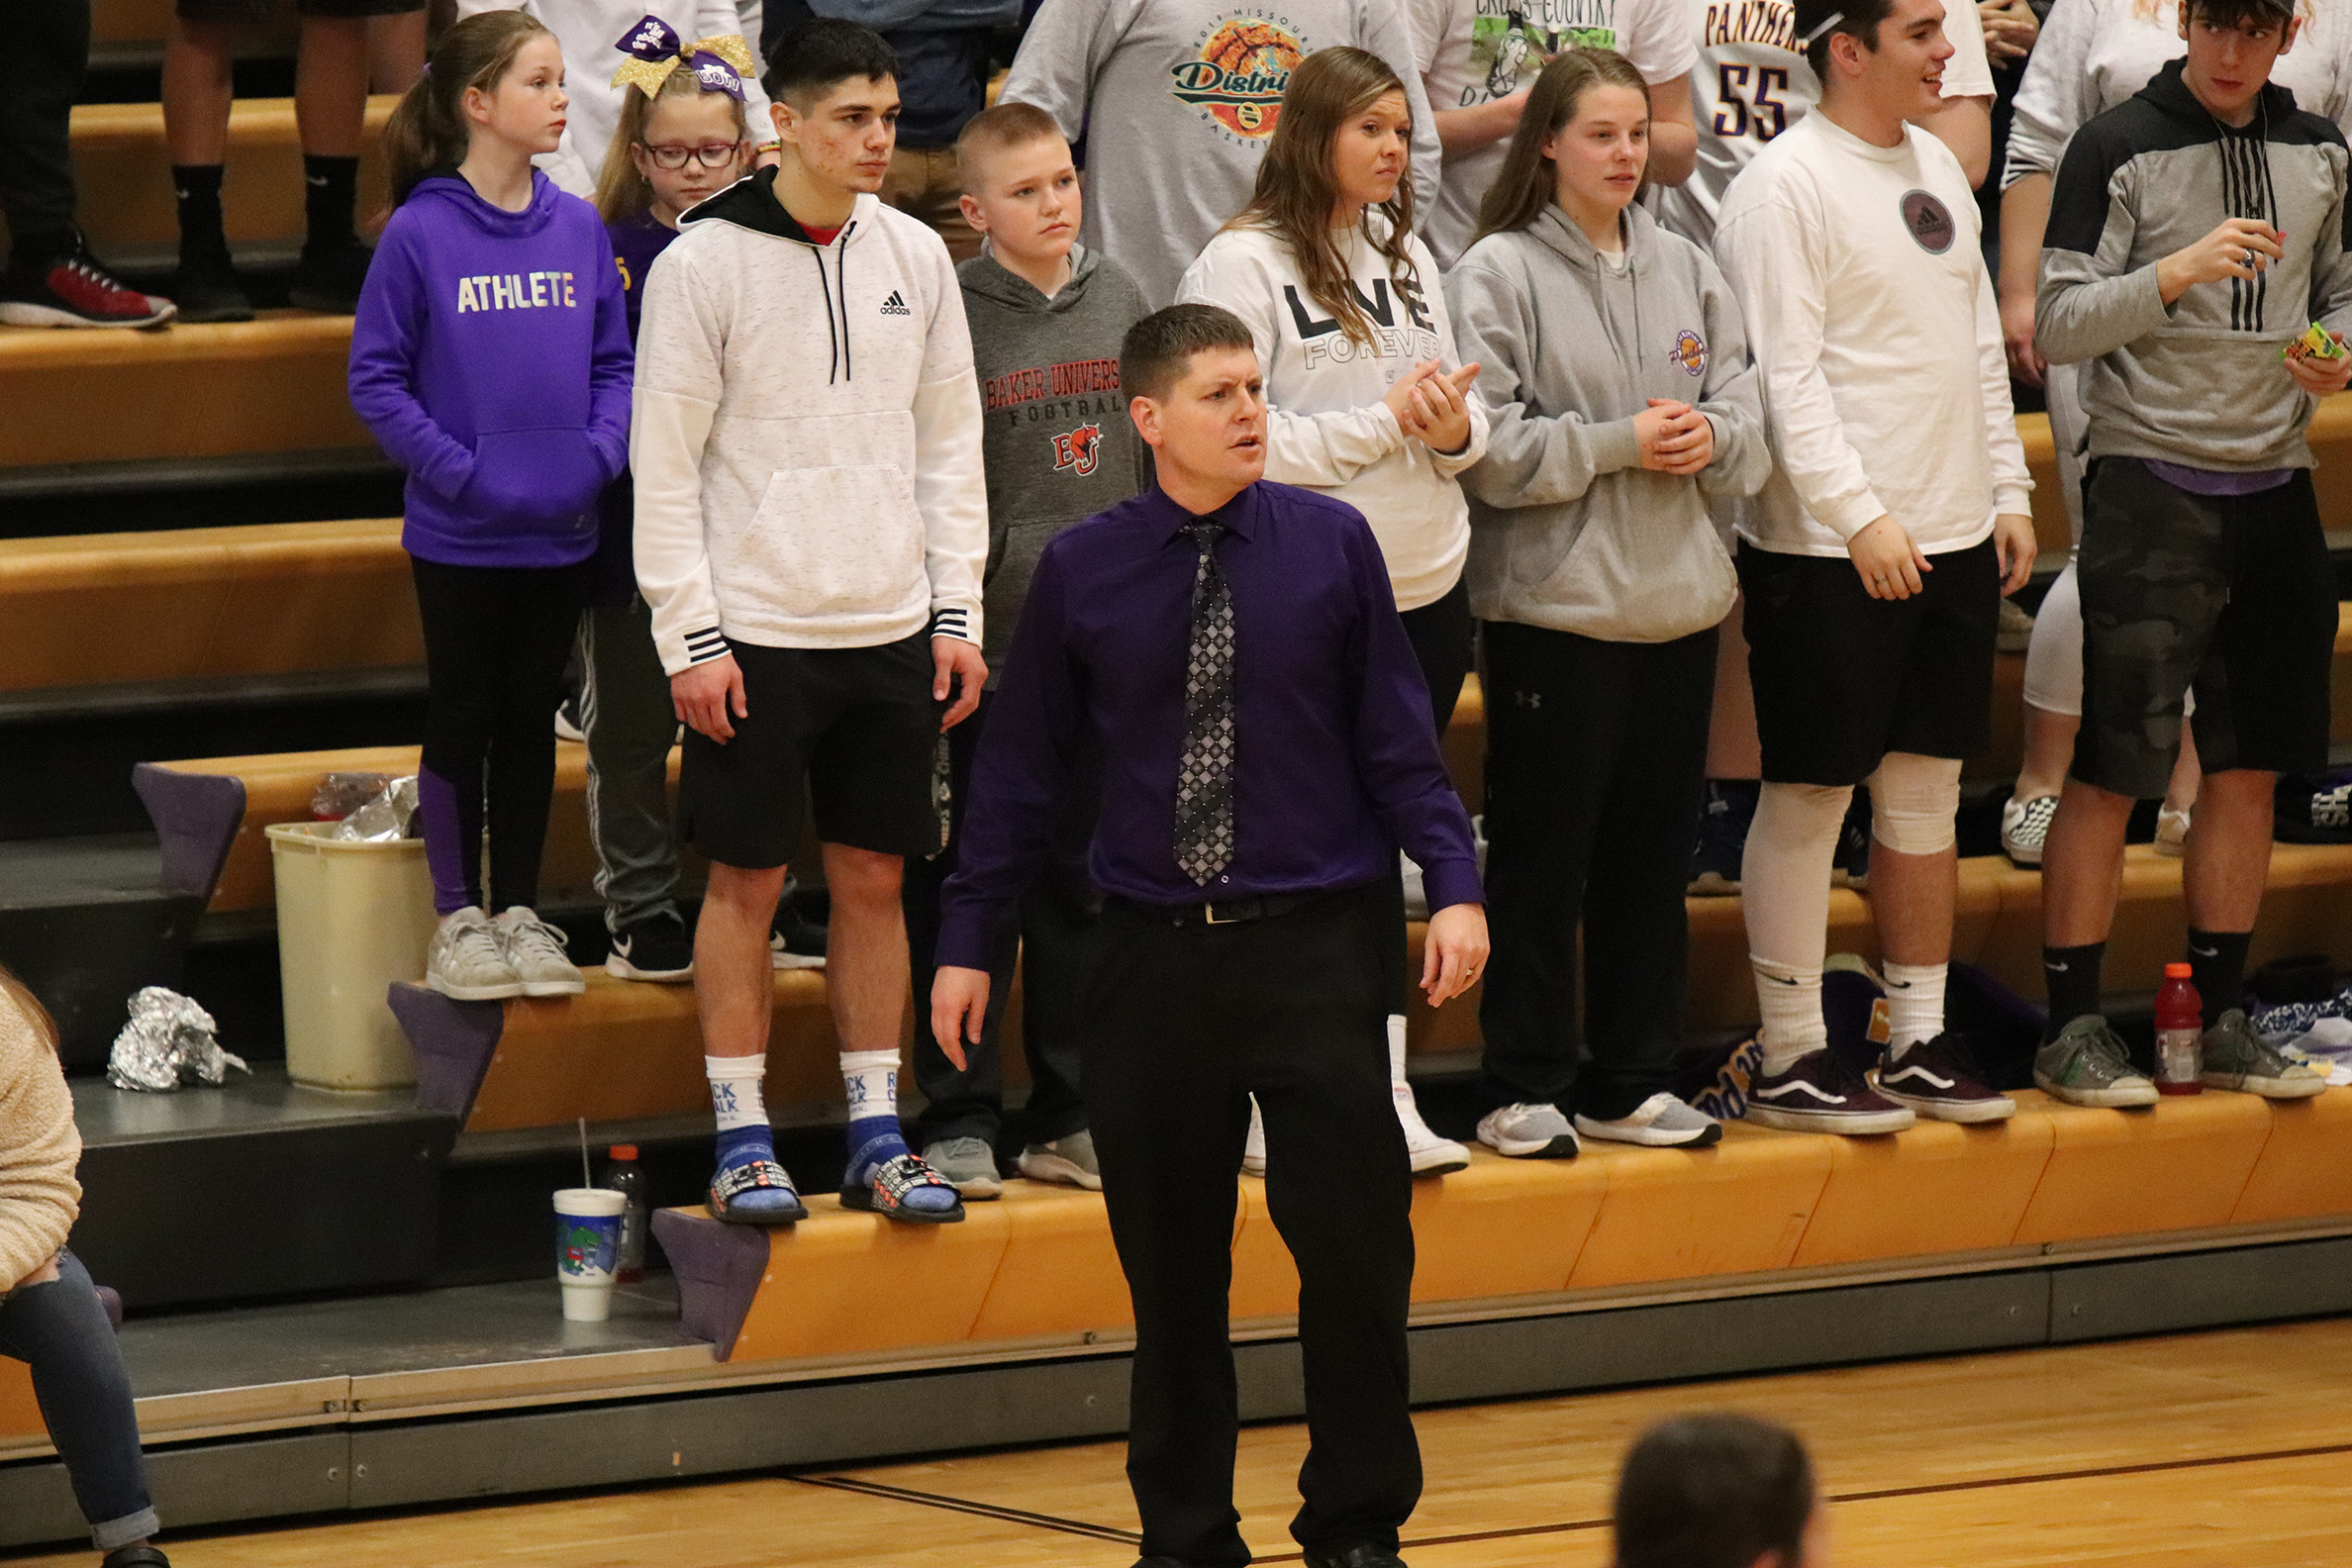 Citizen file photo North Platte girls basketball coach Ryan Davis, shown coaching during a game earlier this season, is the new assistant principal for North Platte Junior High/High School.